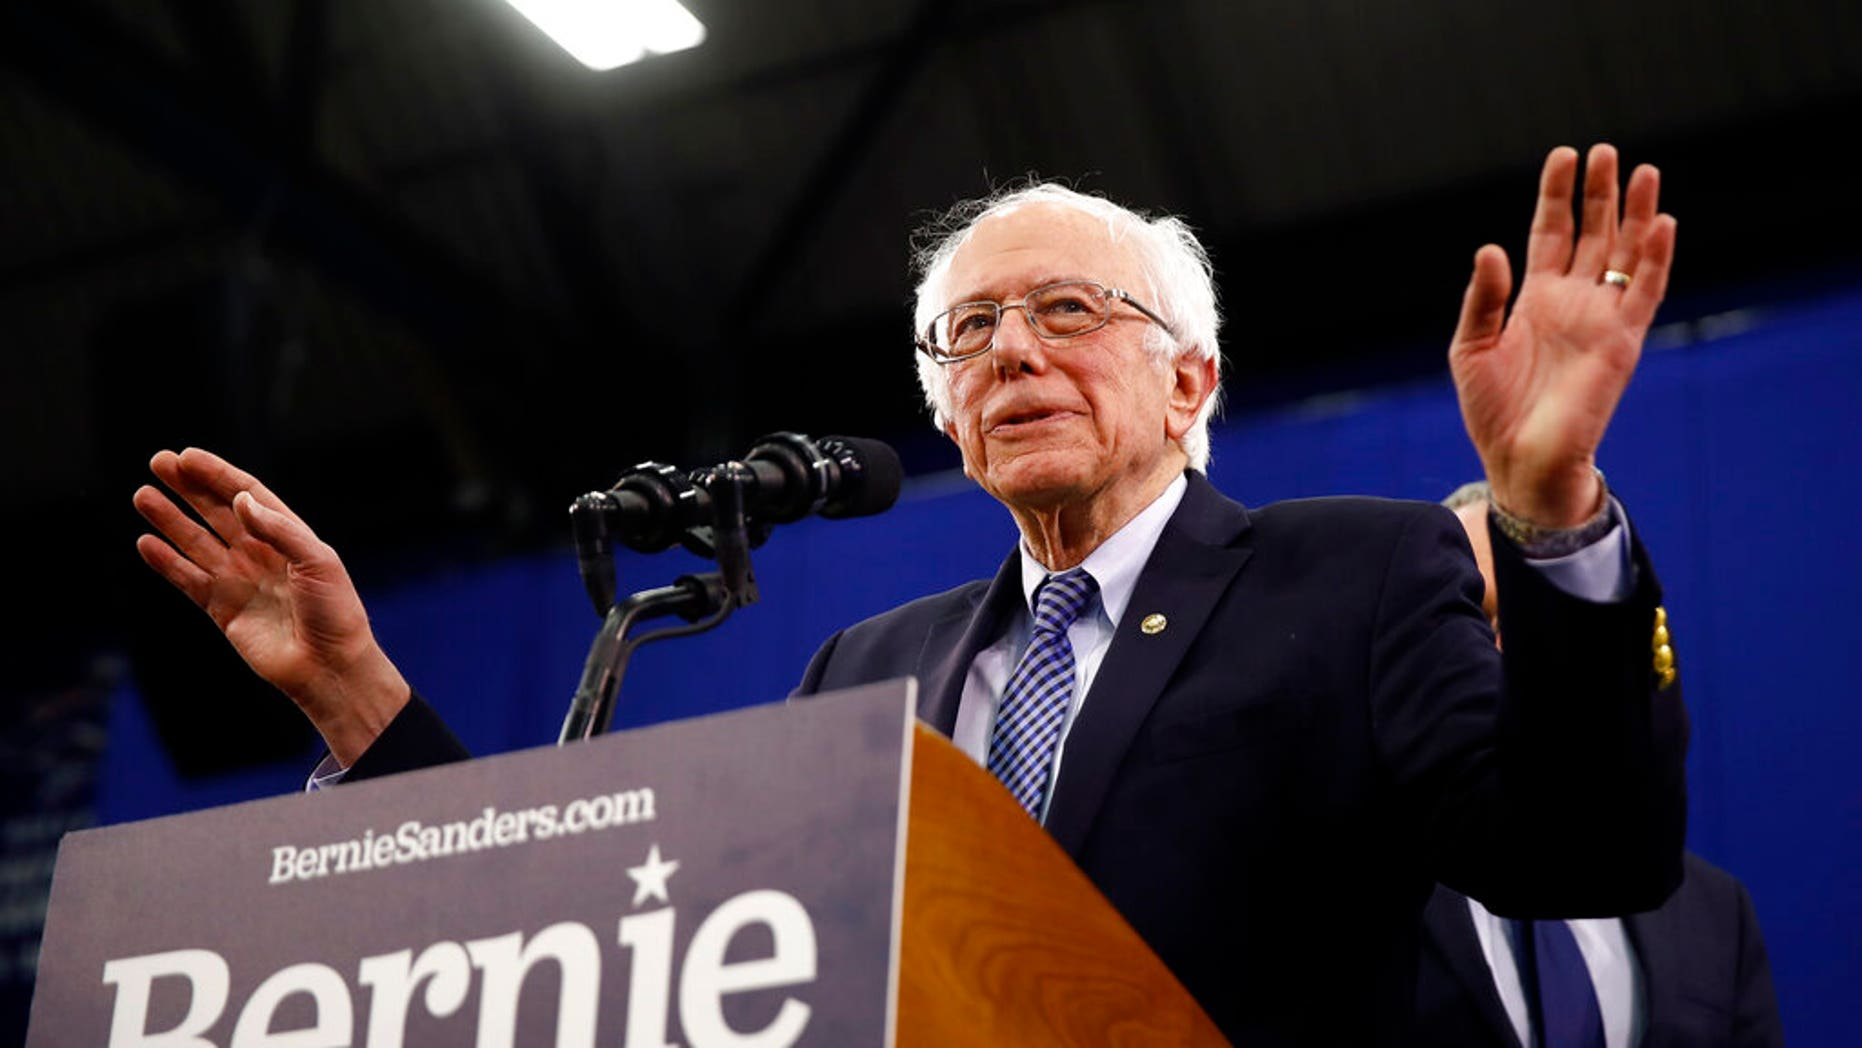 Democratic presidential candidate Sen. Bernie Sanders, I-Vt., speaks to supporters at a primary night election rally in Manchester, N.H., Tuesday, Feb. 11, 2020. (AP Photo/Matt Rourke)